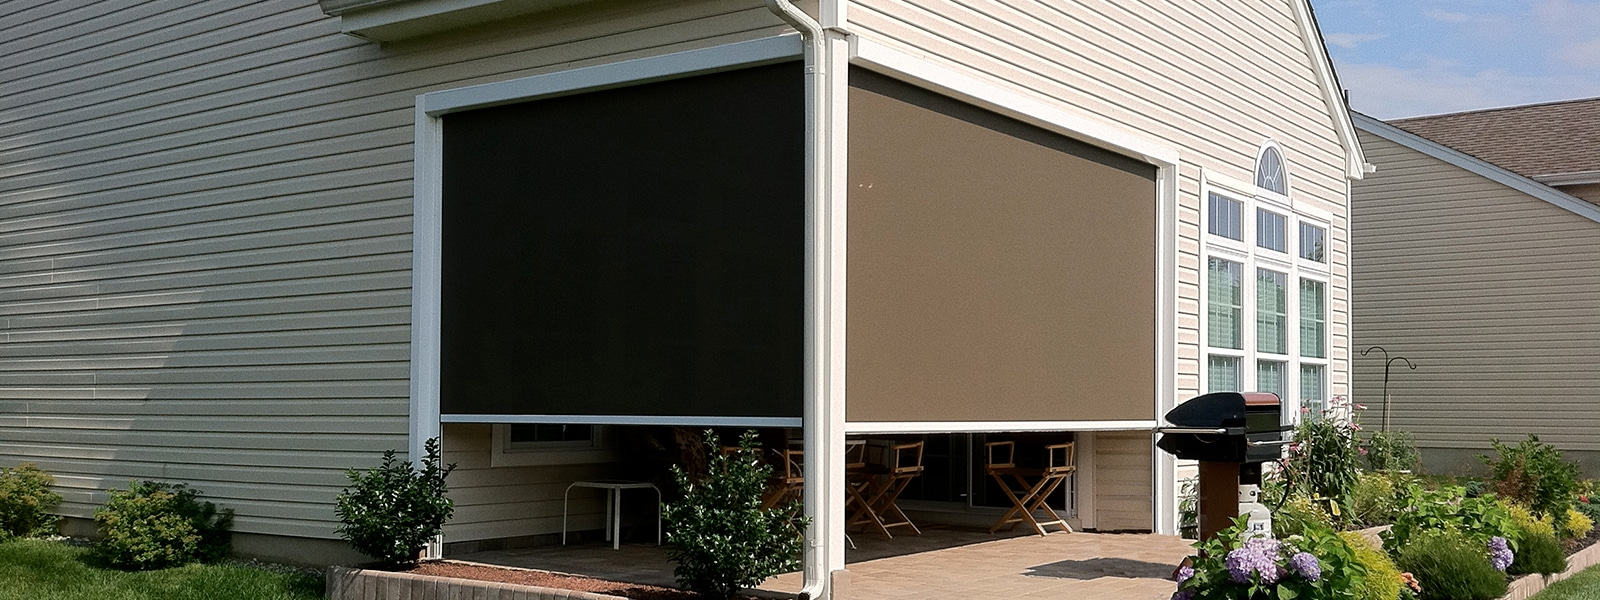 Exterior Solar Shades South Carolina